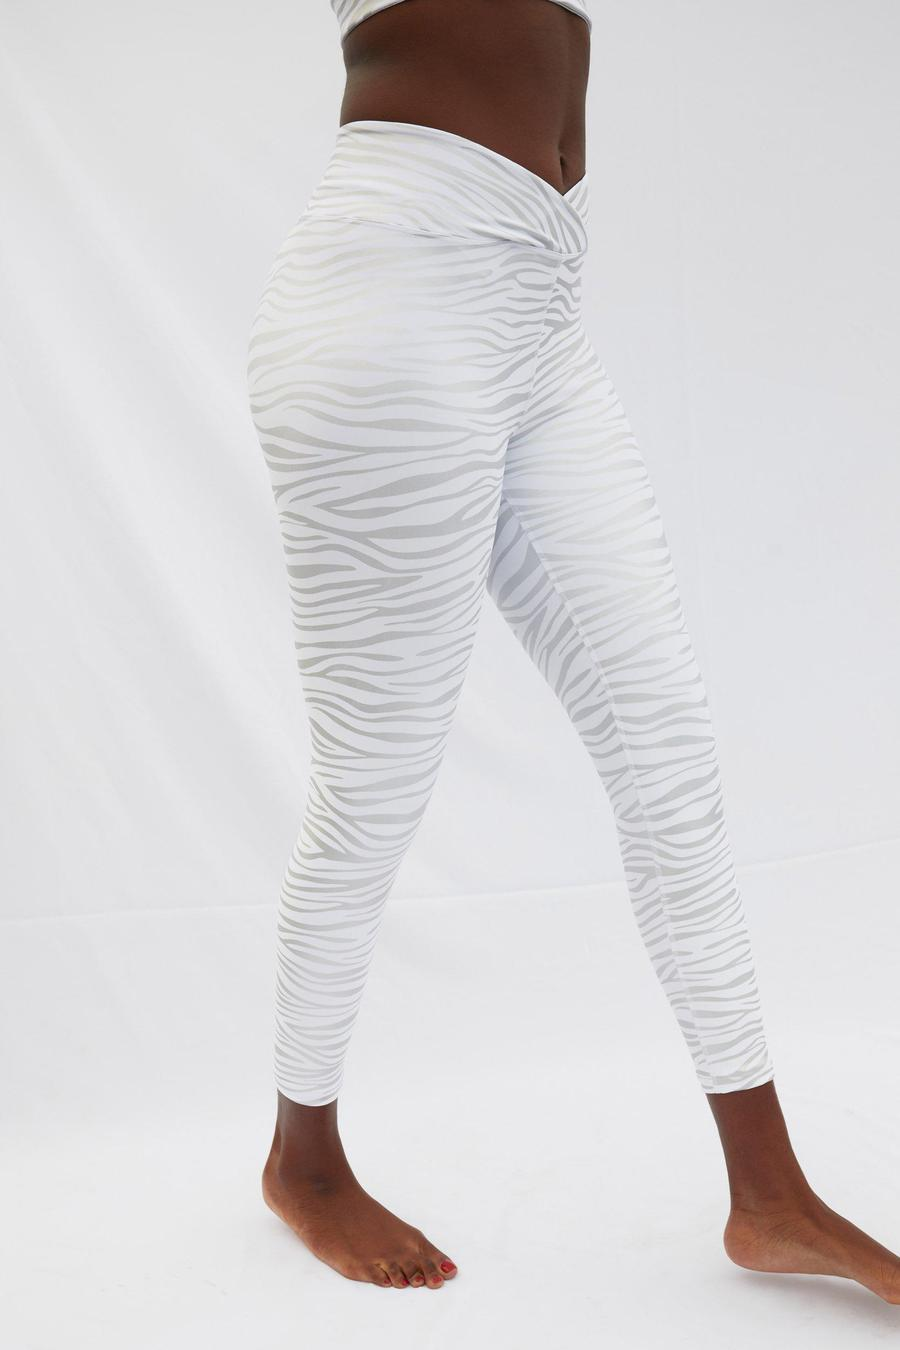 TIGER FOIL SPORT LEGGING | YEAR OF OURS